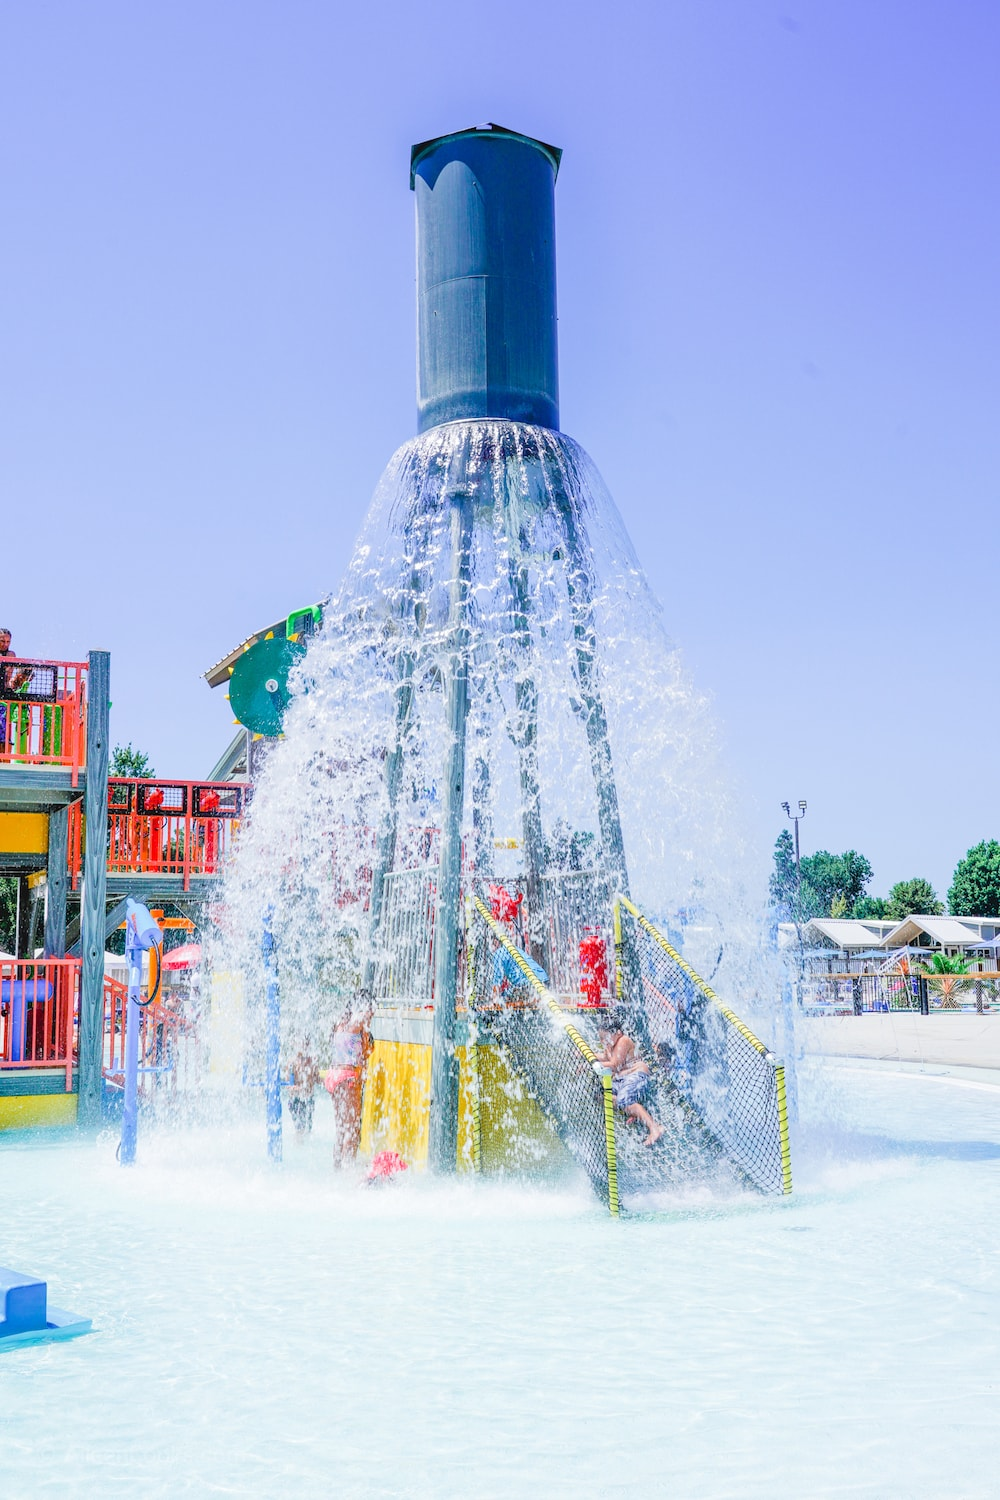 A large water feature pouring water out over a water playground at Tower Park in Lodi.